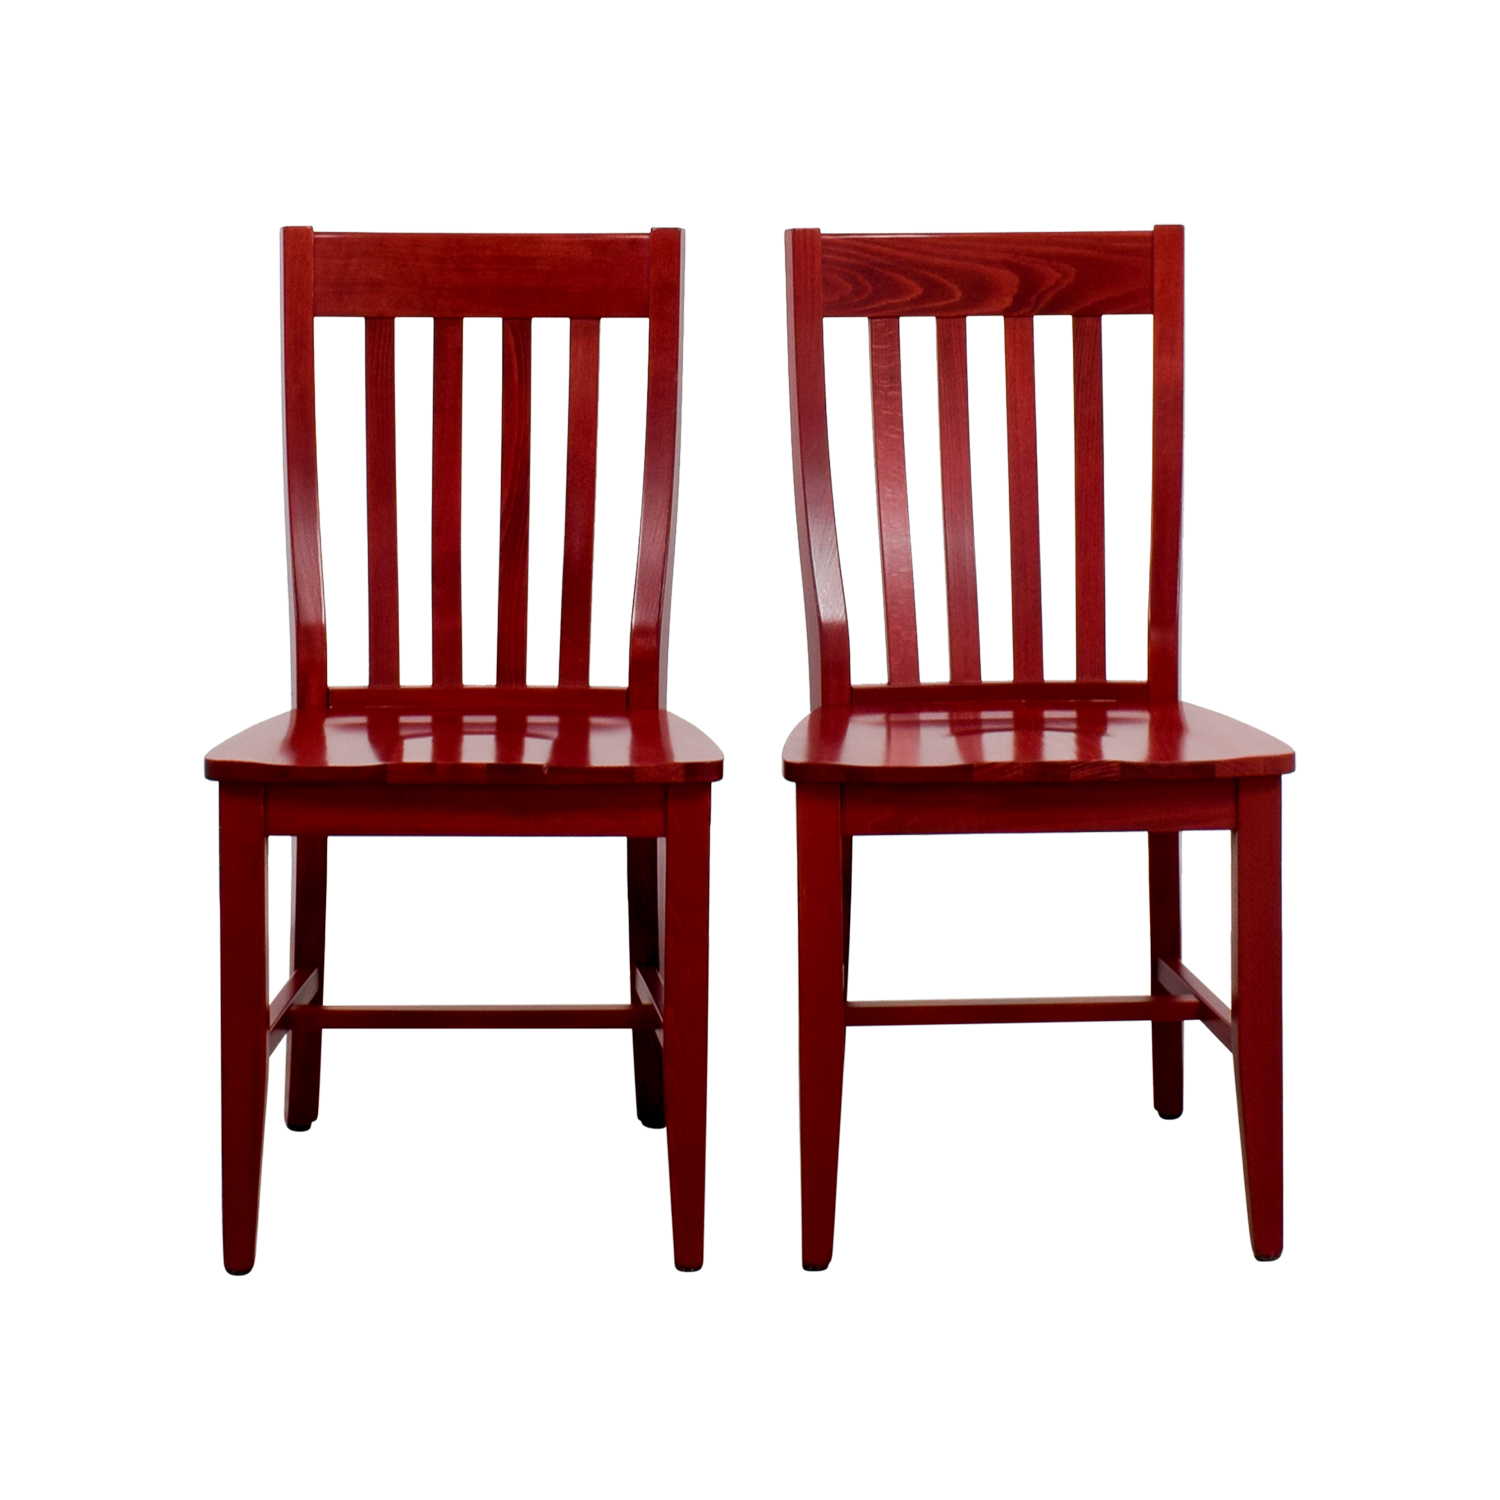 shop Pottery Barn Schoolhouse Chairs Pottery Barn Dining Chairs